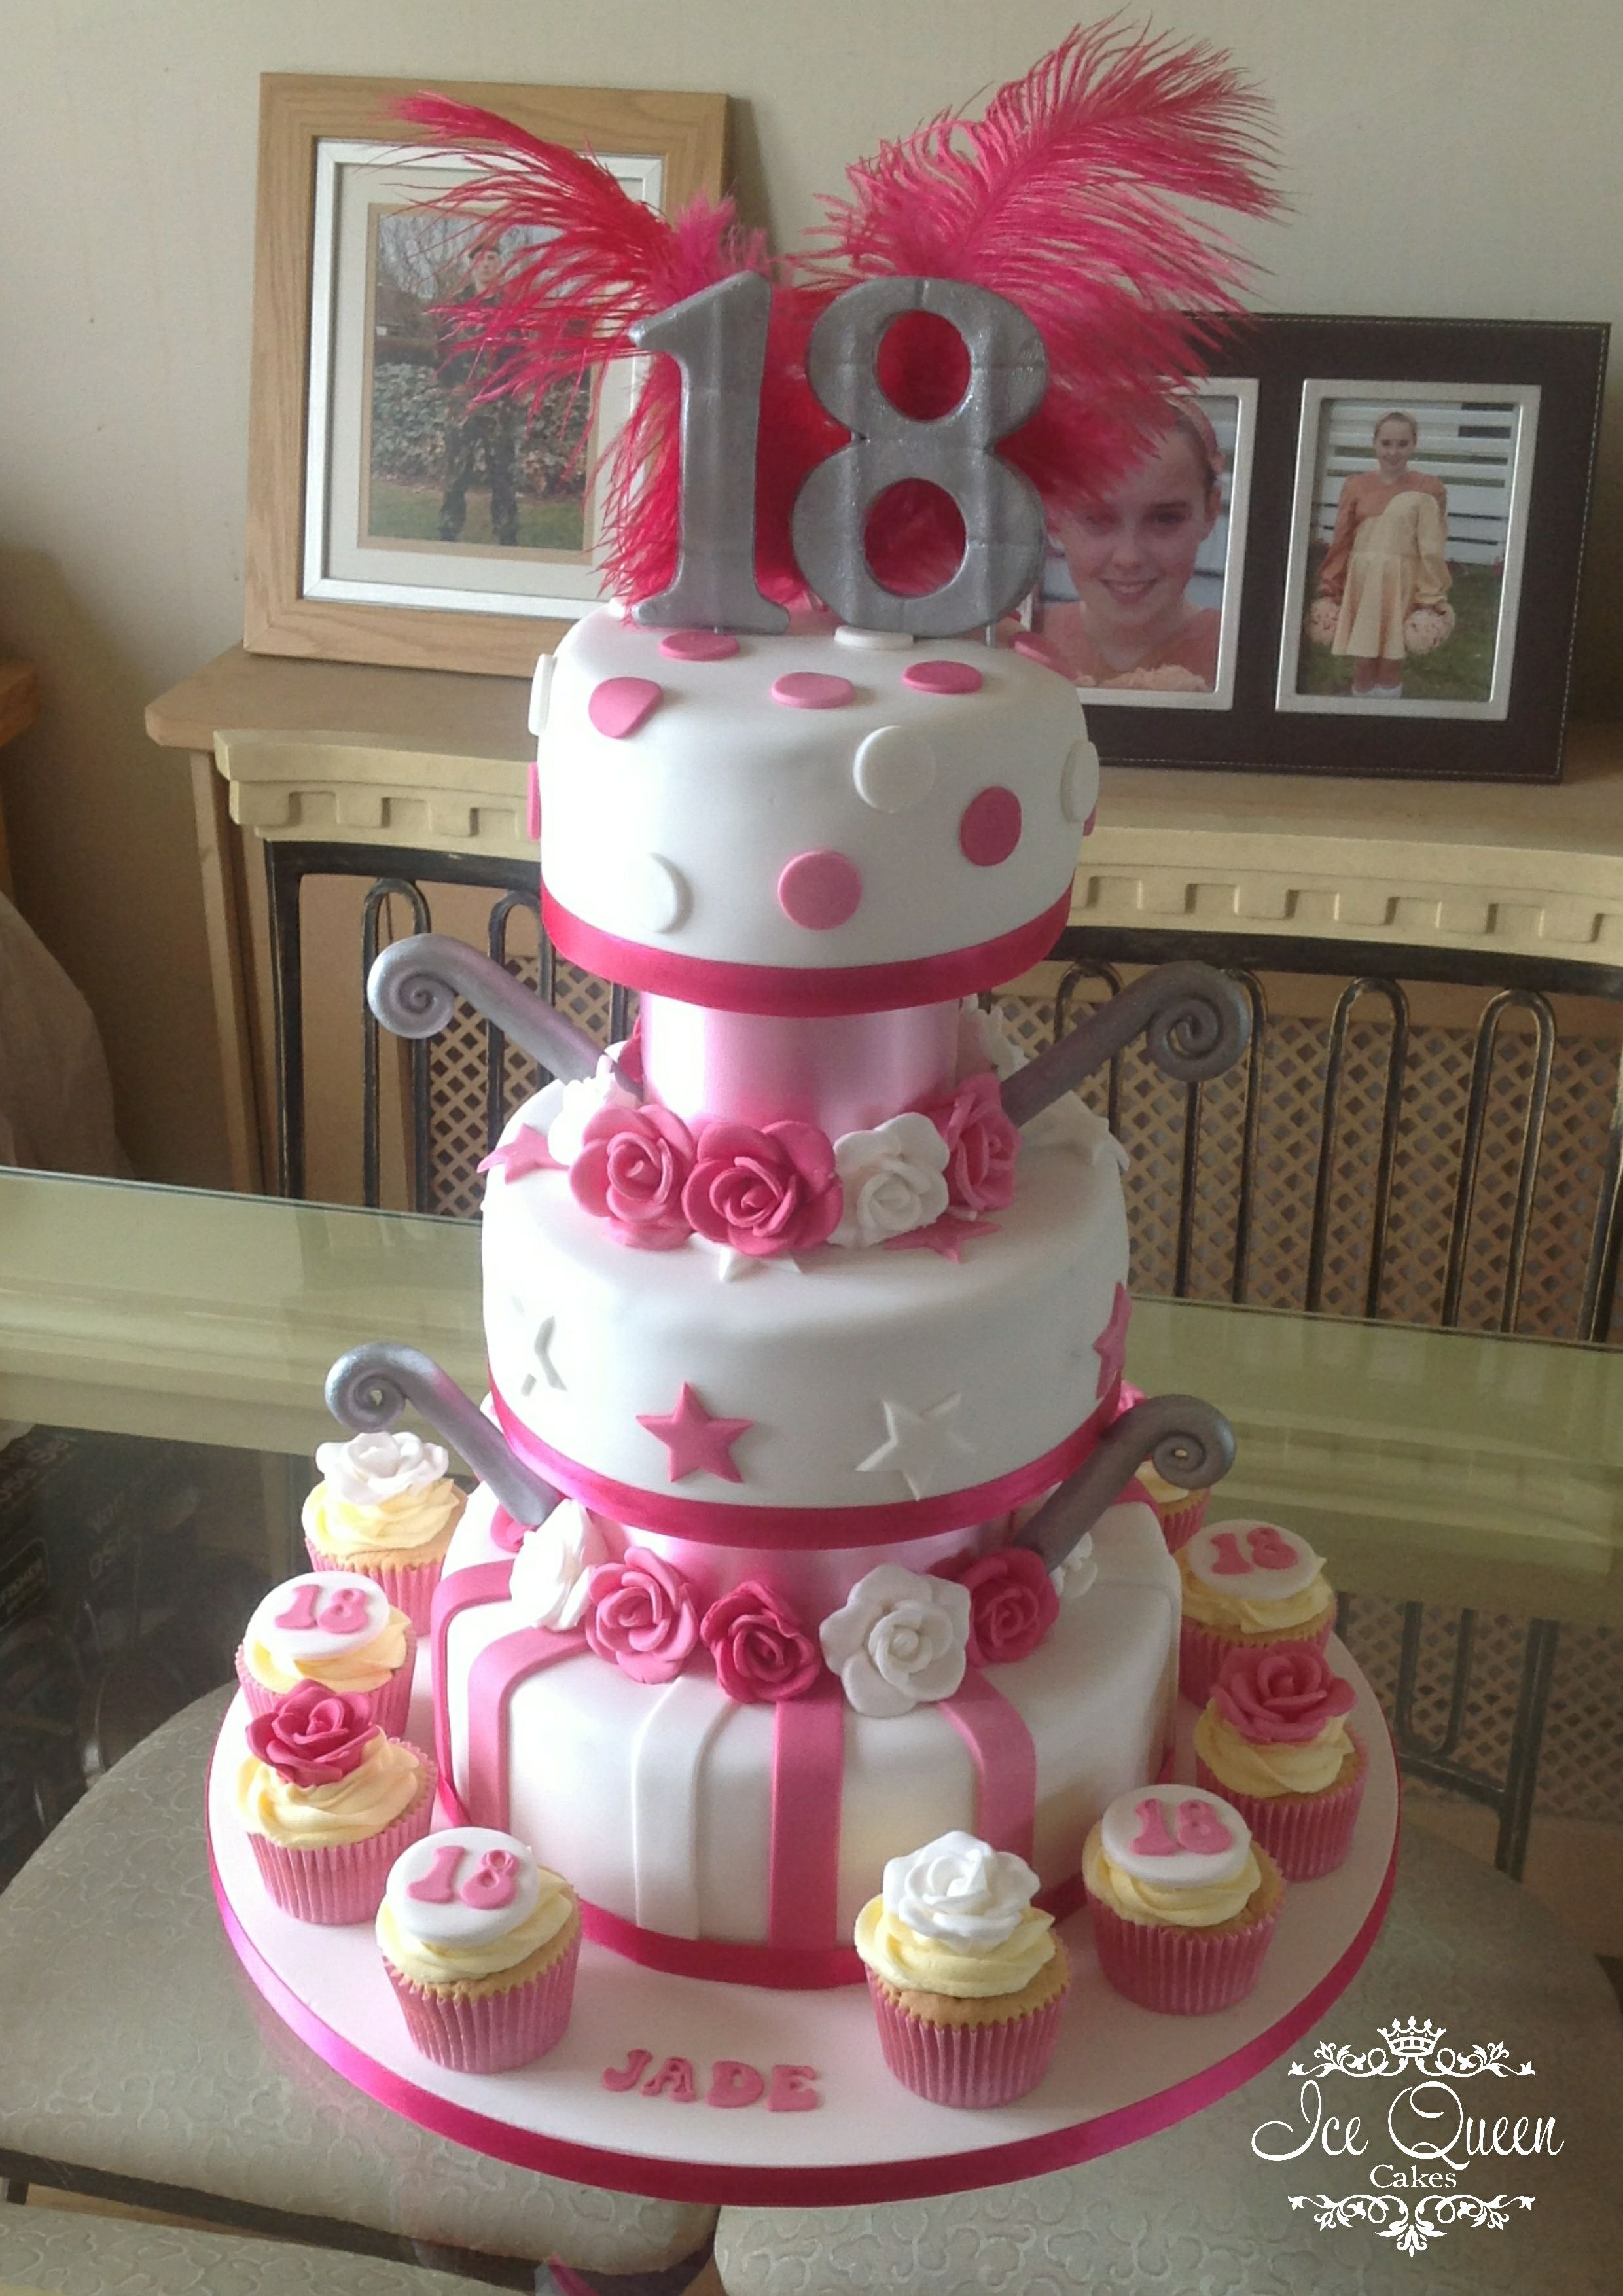 3 tier 18th birthday cake in pink white silver with cupcakes